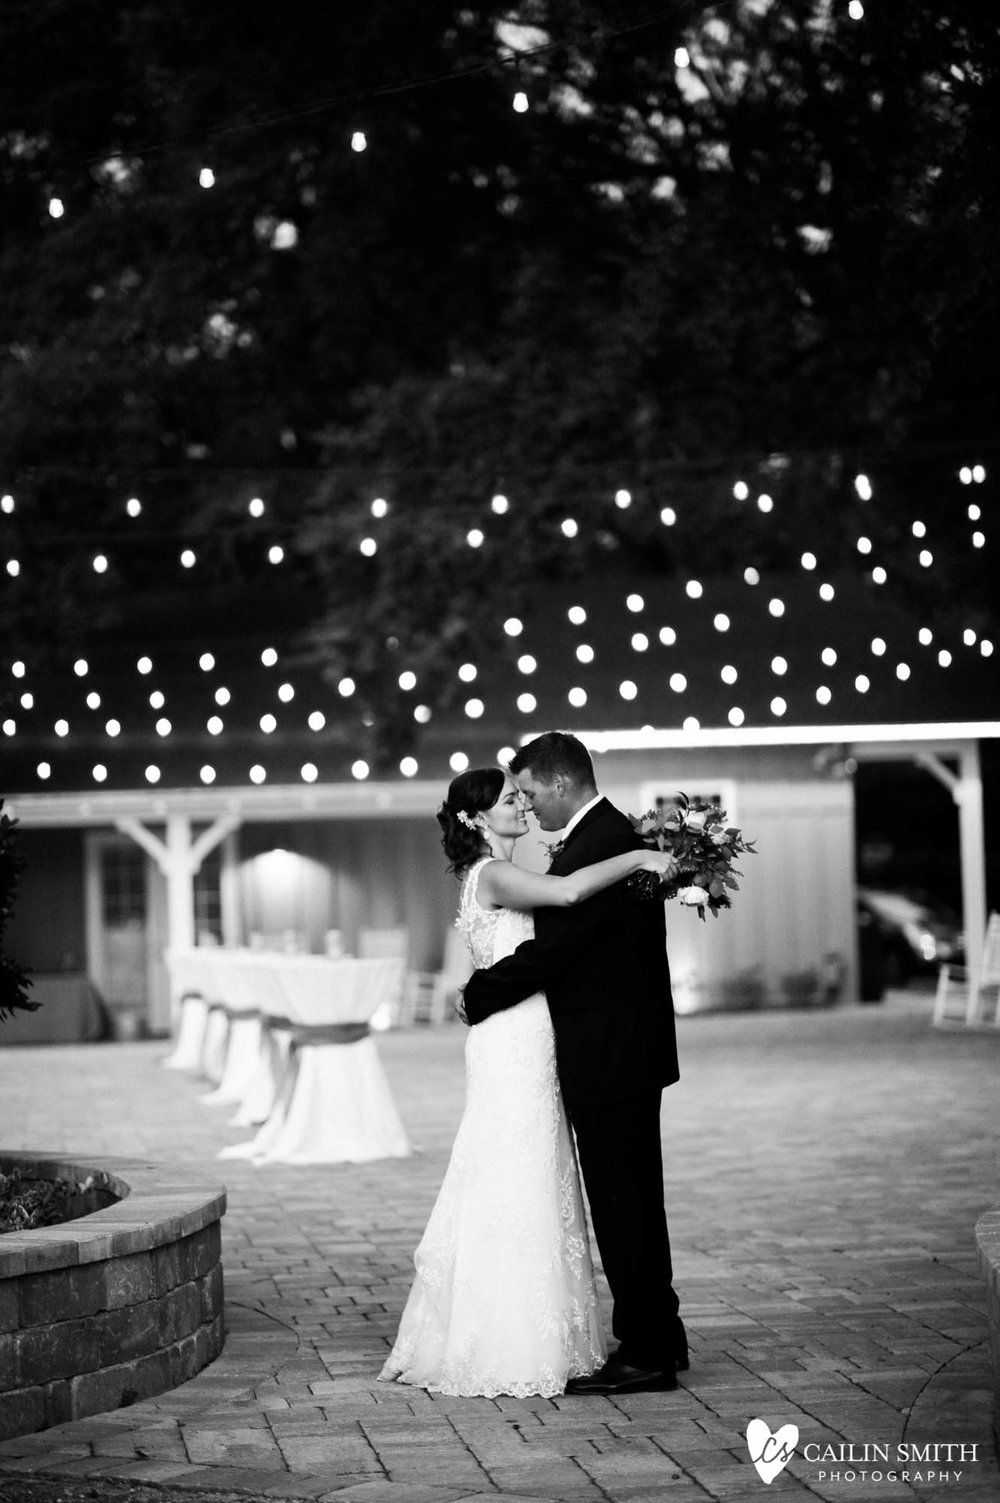 Bethany_Kyle_Bowing_Oaks_Plantation_Wedding_Photography_0088.jpg